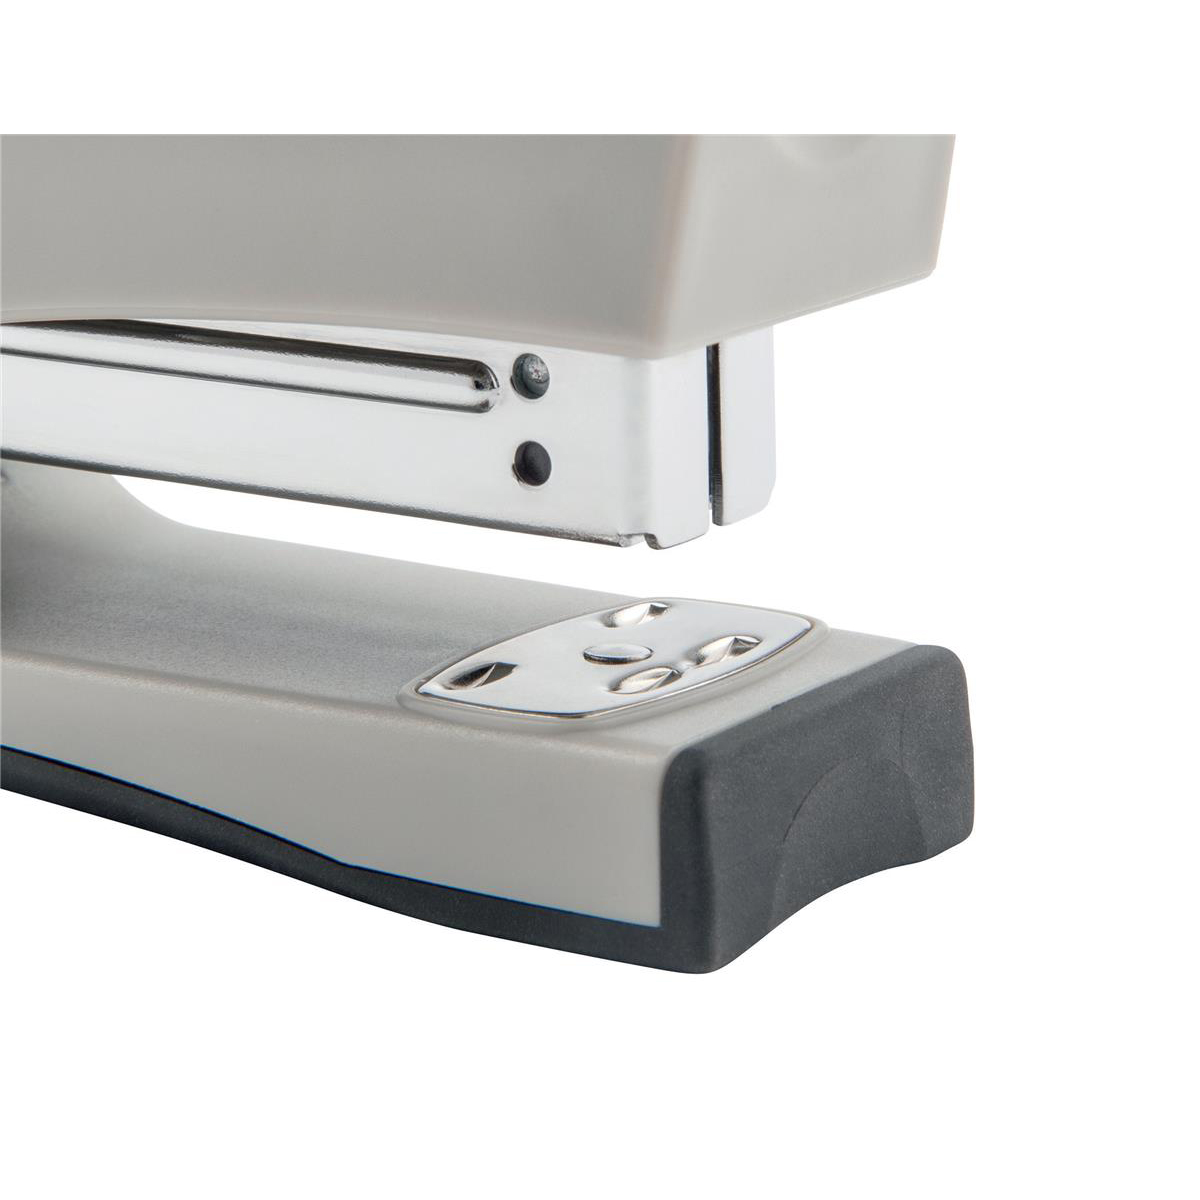 5 Star Office Half Strip Stand Up Stapler 20 Sheet Capacity Takes 26/6 and 24/6 Staples Black/Grey